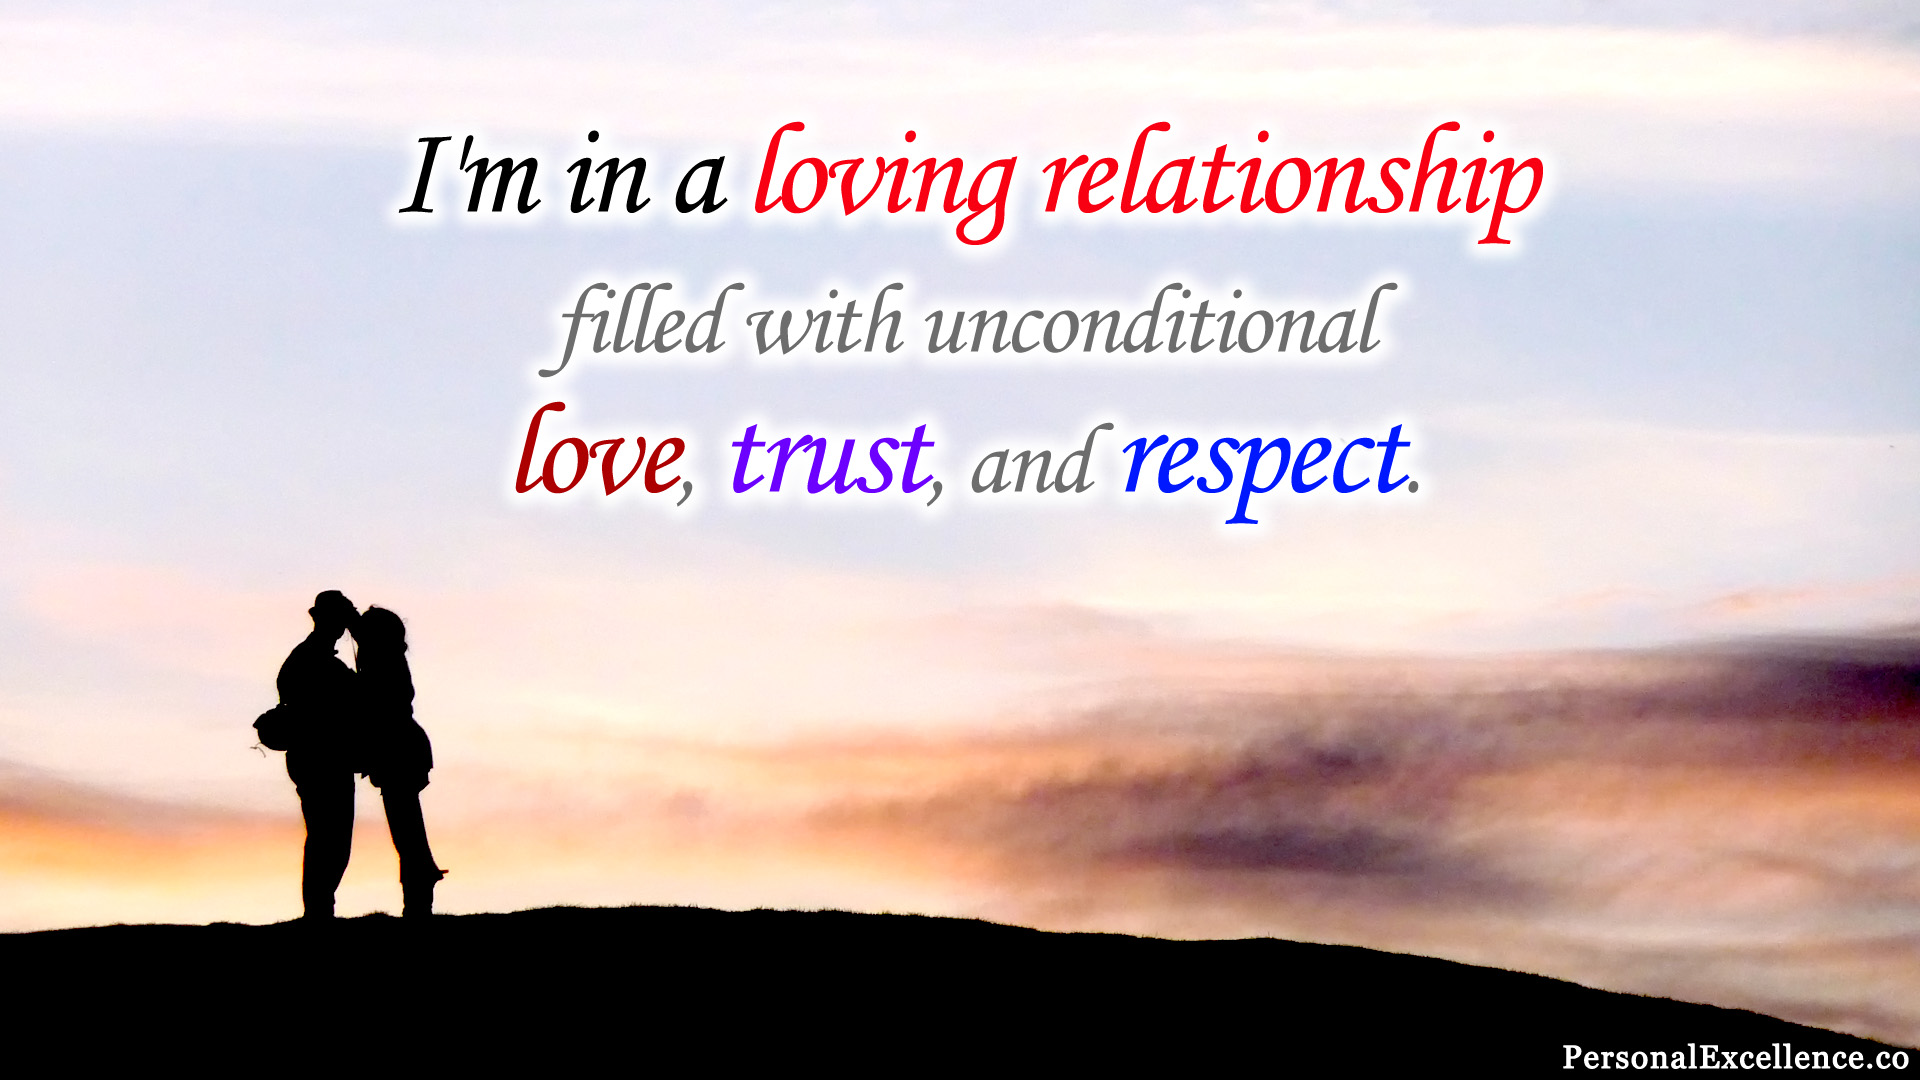 How to achieve unconditional love relationship